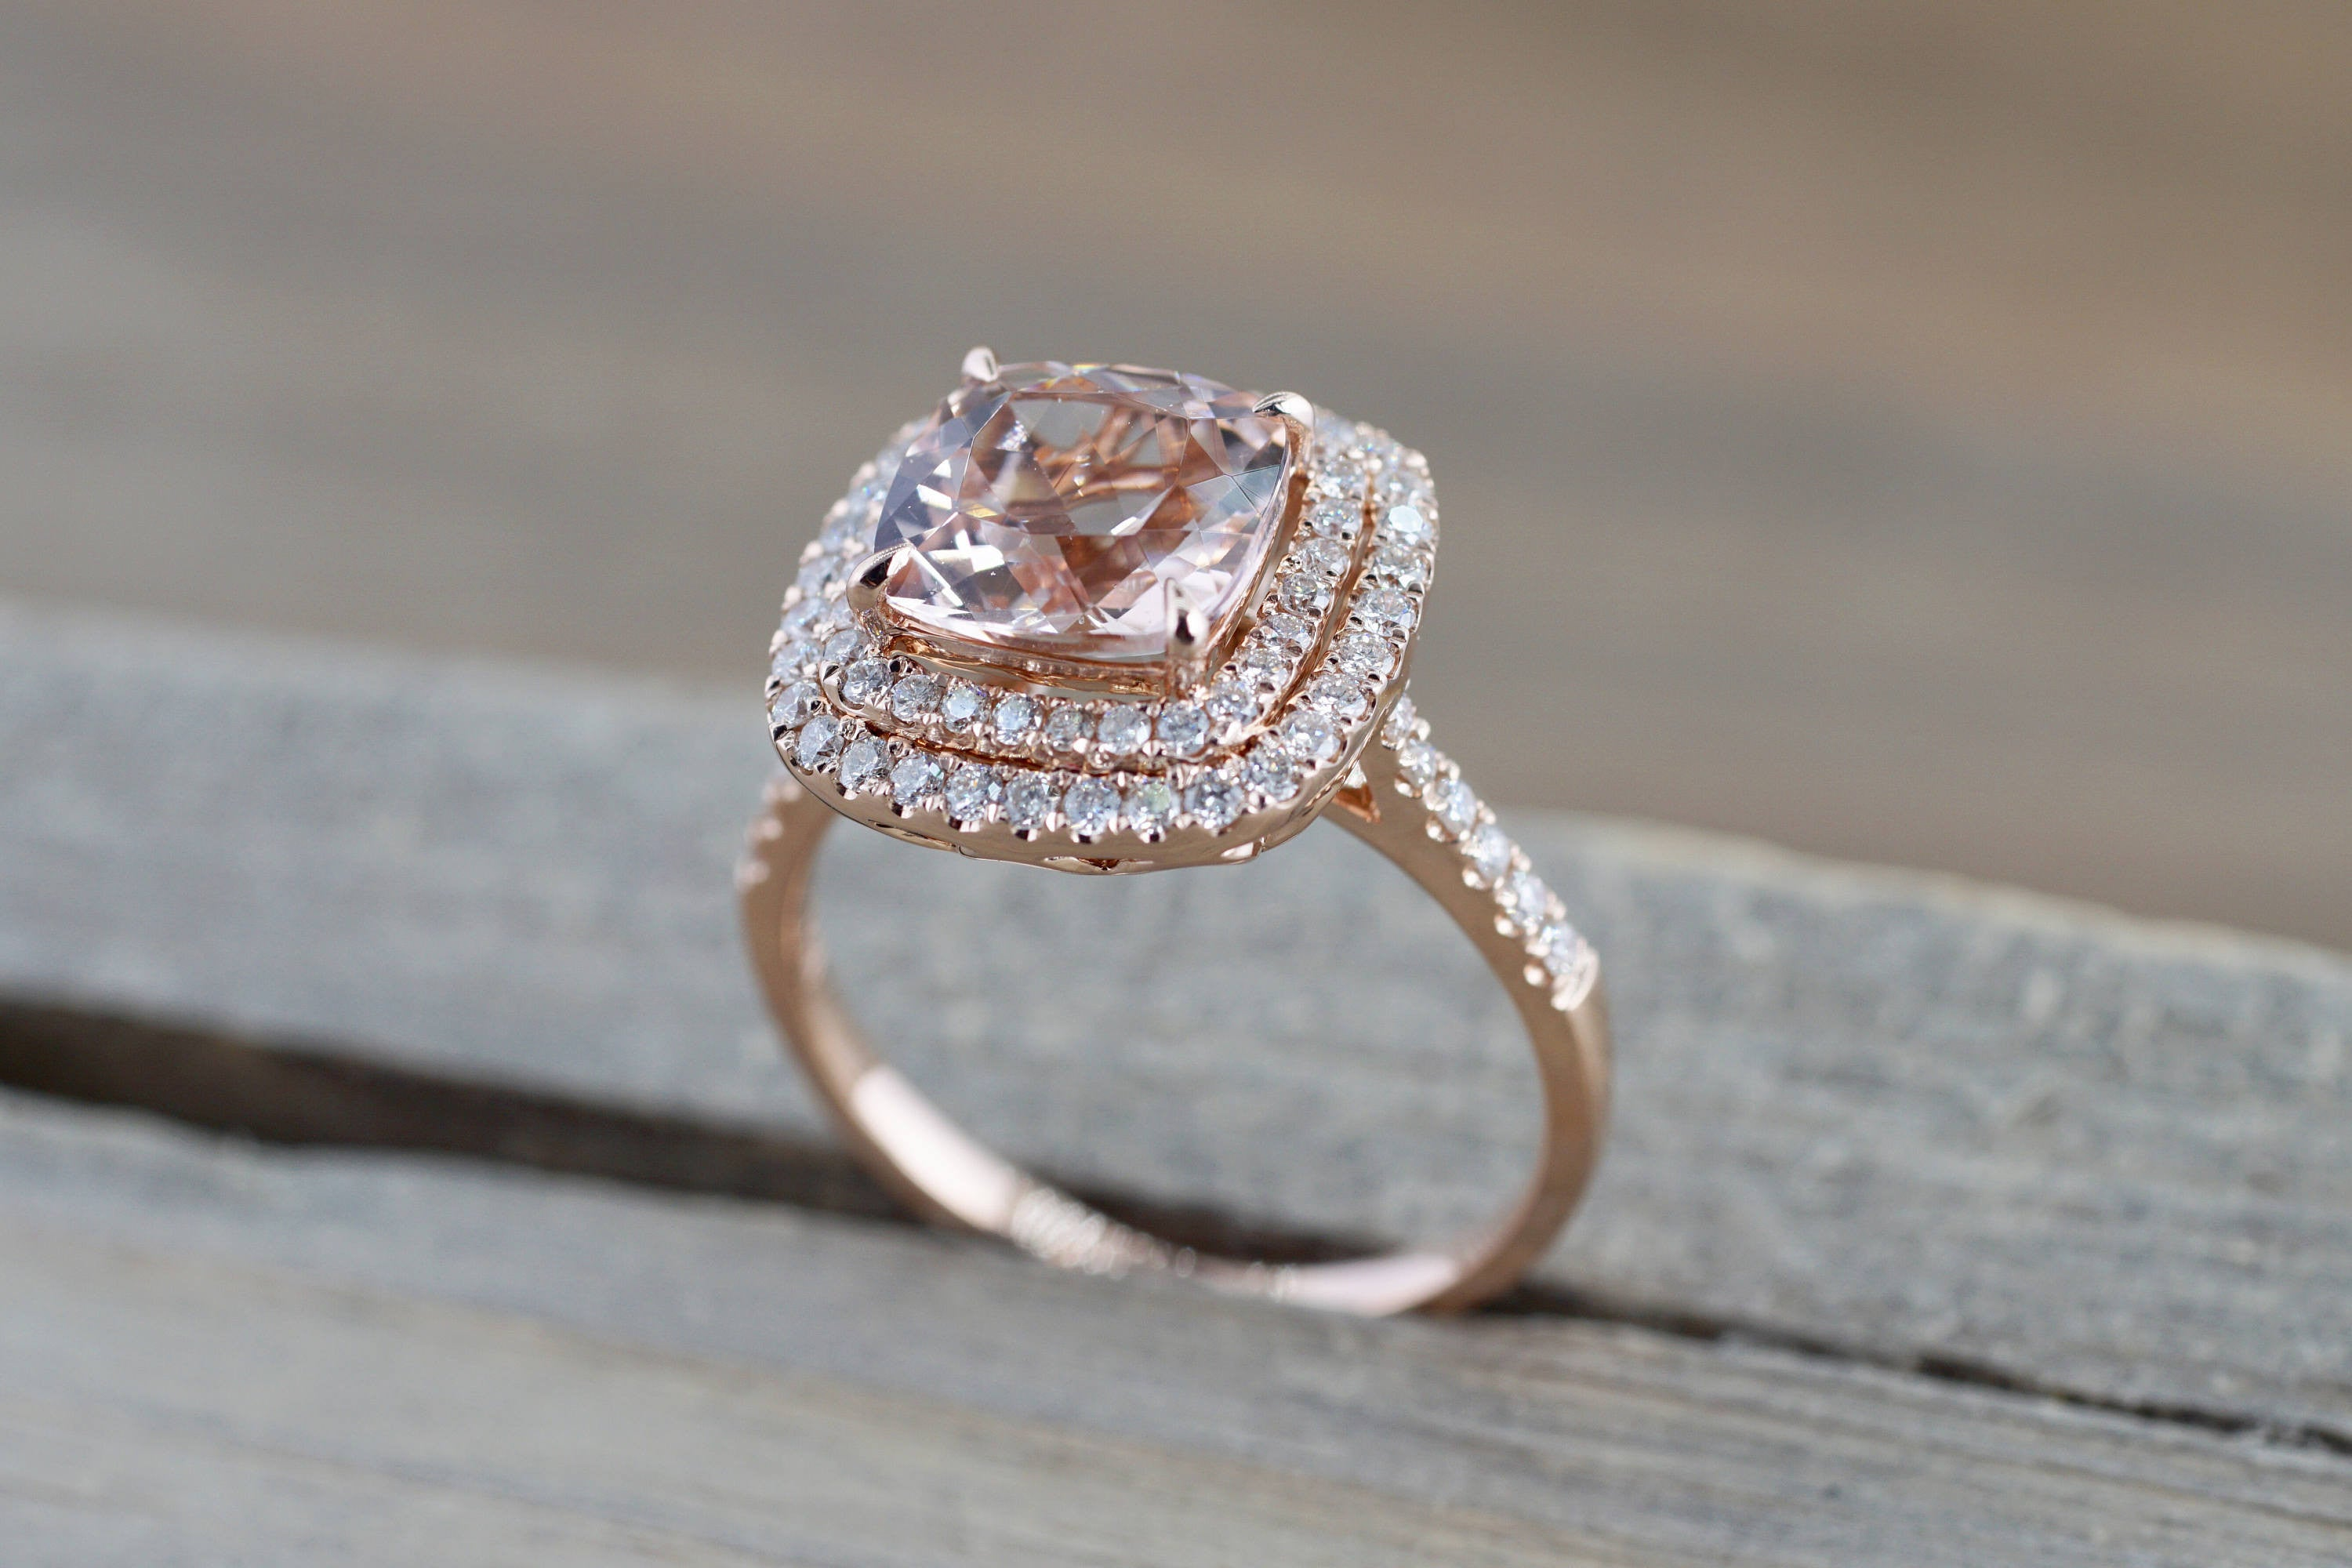 morganite pink princess updatedpinkmorganitering carried next ring royal jewels diamond products